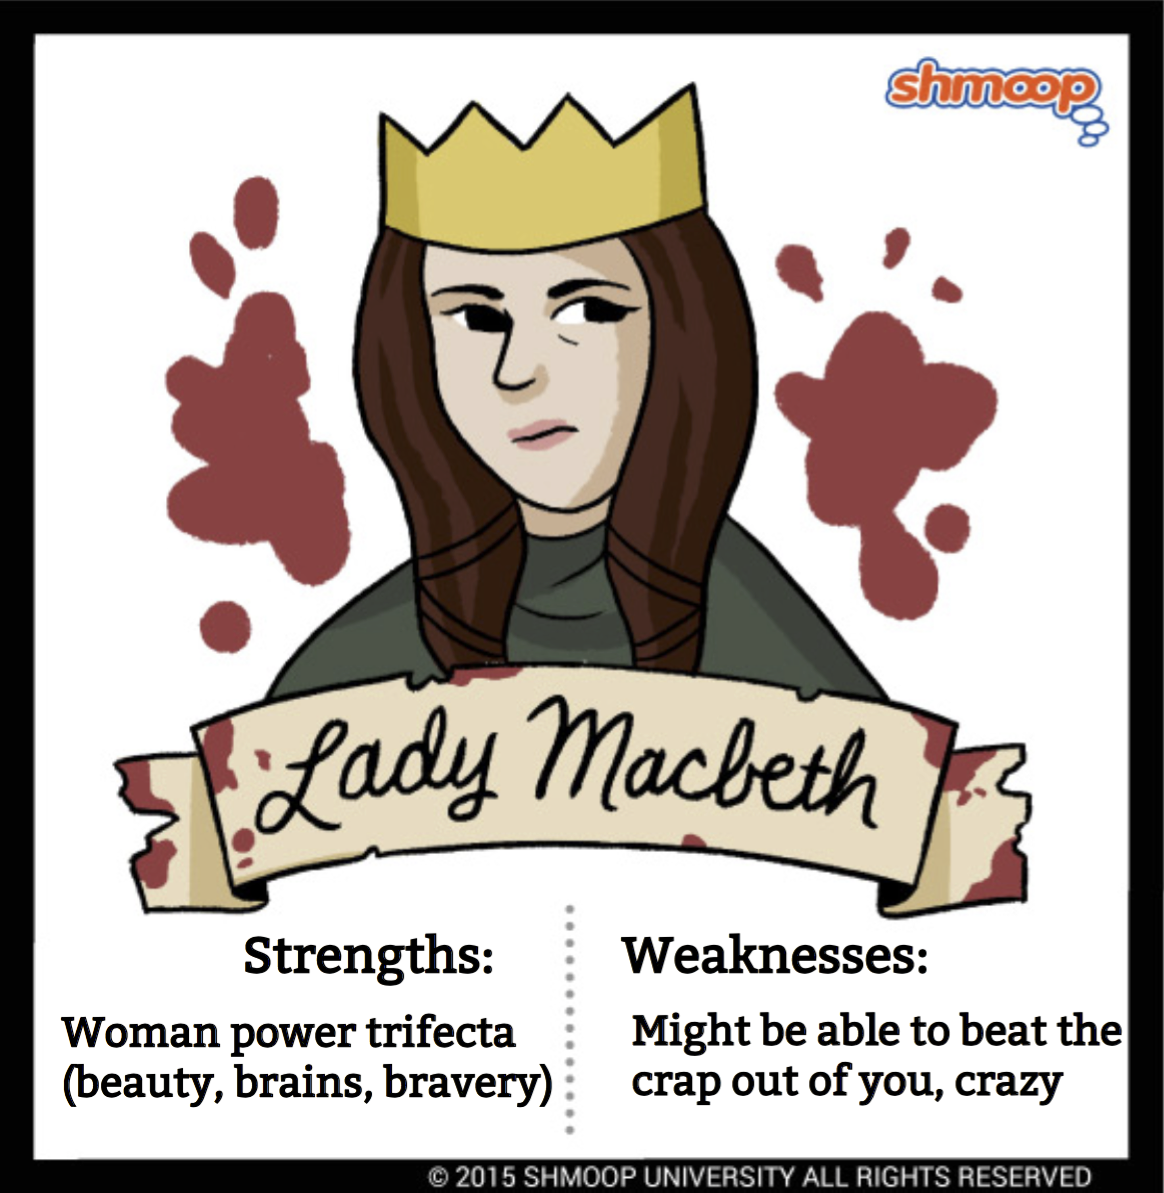 lady macbeth and her gender essay An analysis of lady macbeth's gender role throughout macbeth aline tran shakespeare's macbeth is a male dominated play most of the noticeable characters in macbeth are male, including macbeth, macduff, banquo, king duncan, and malcolm.